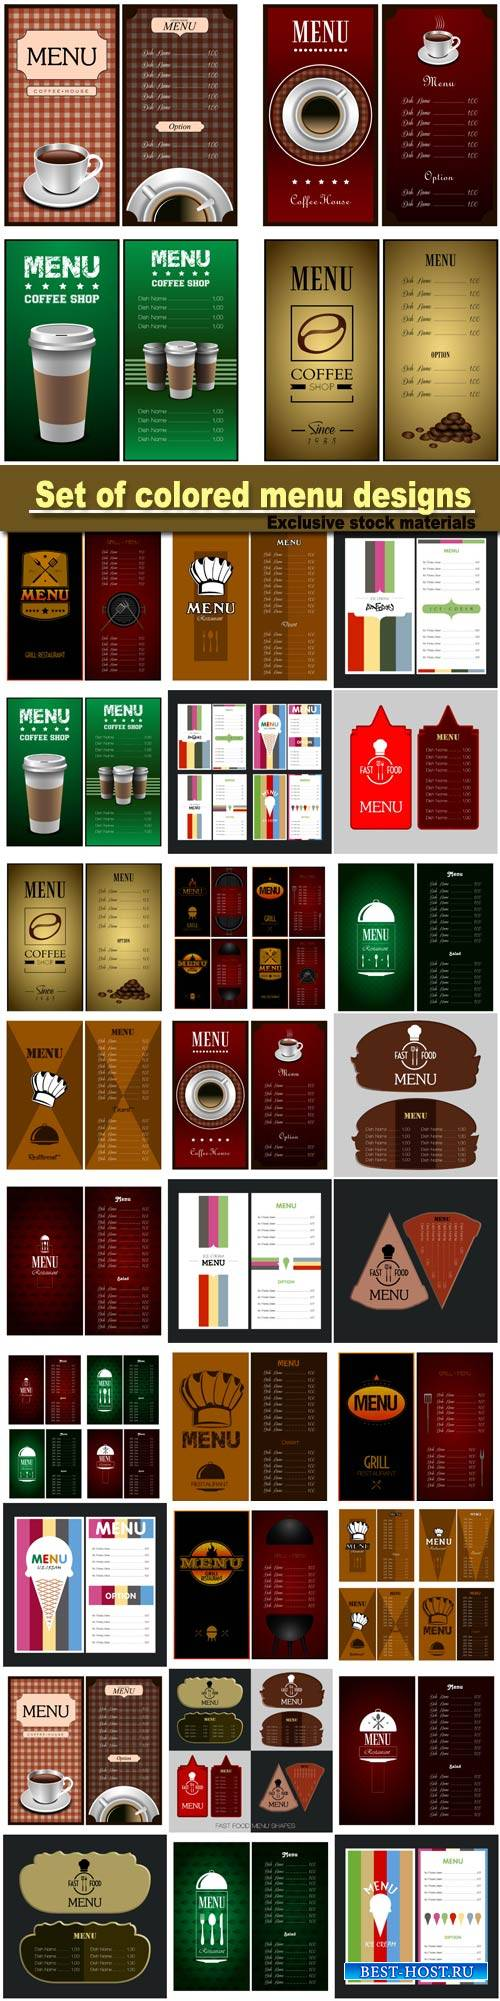 Set of colored menu designs, vector illustration